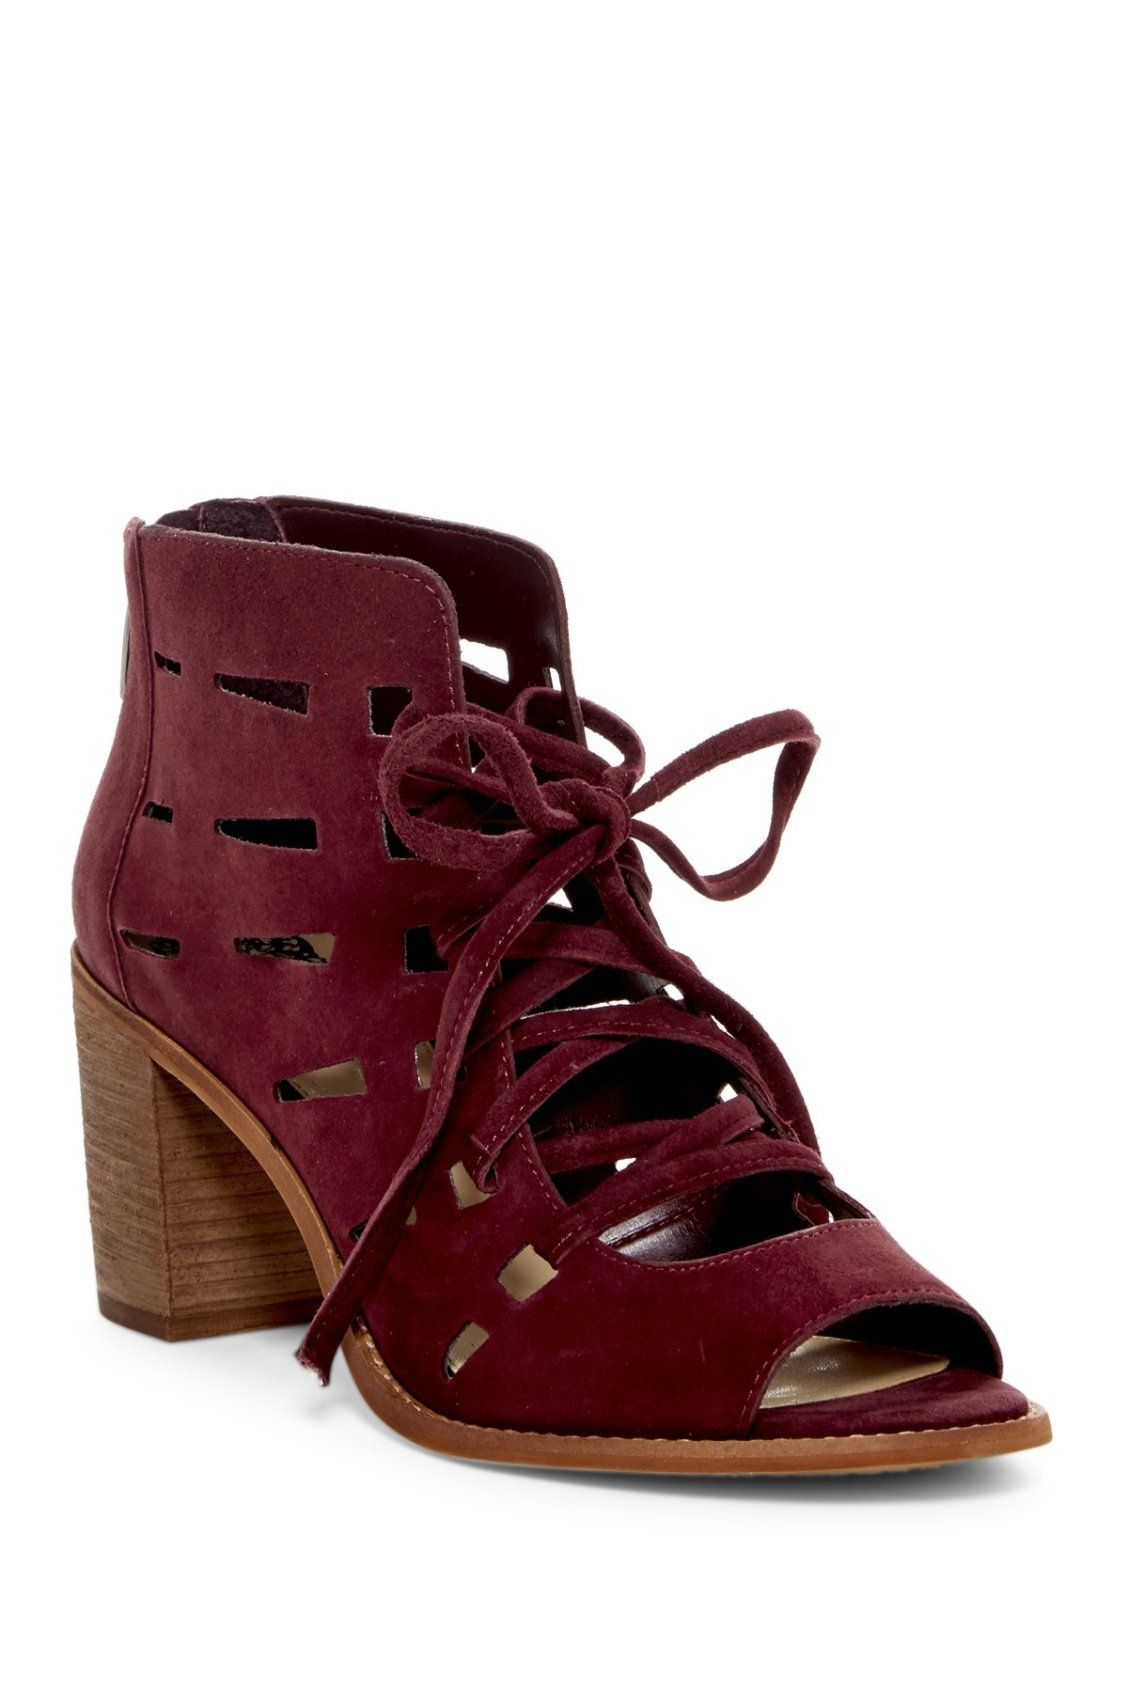 f73f2fe16e6 Burgundy Vince Camuto Tressa Perforated Leather Block Heel Sandals ...